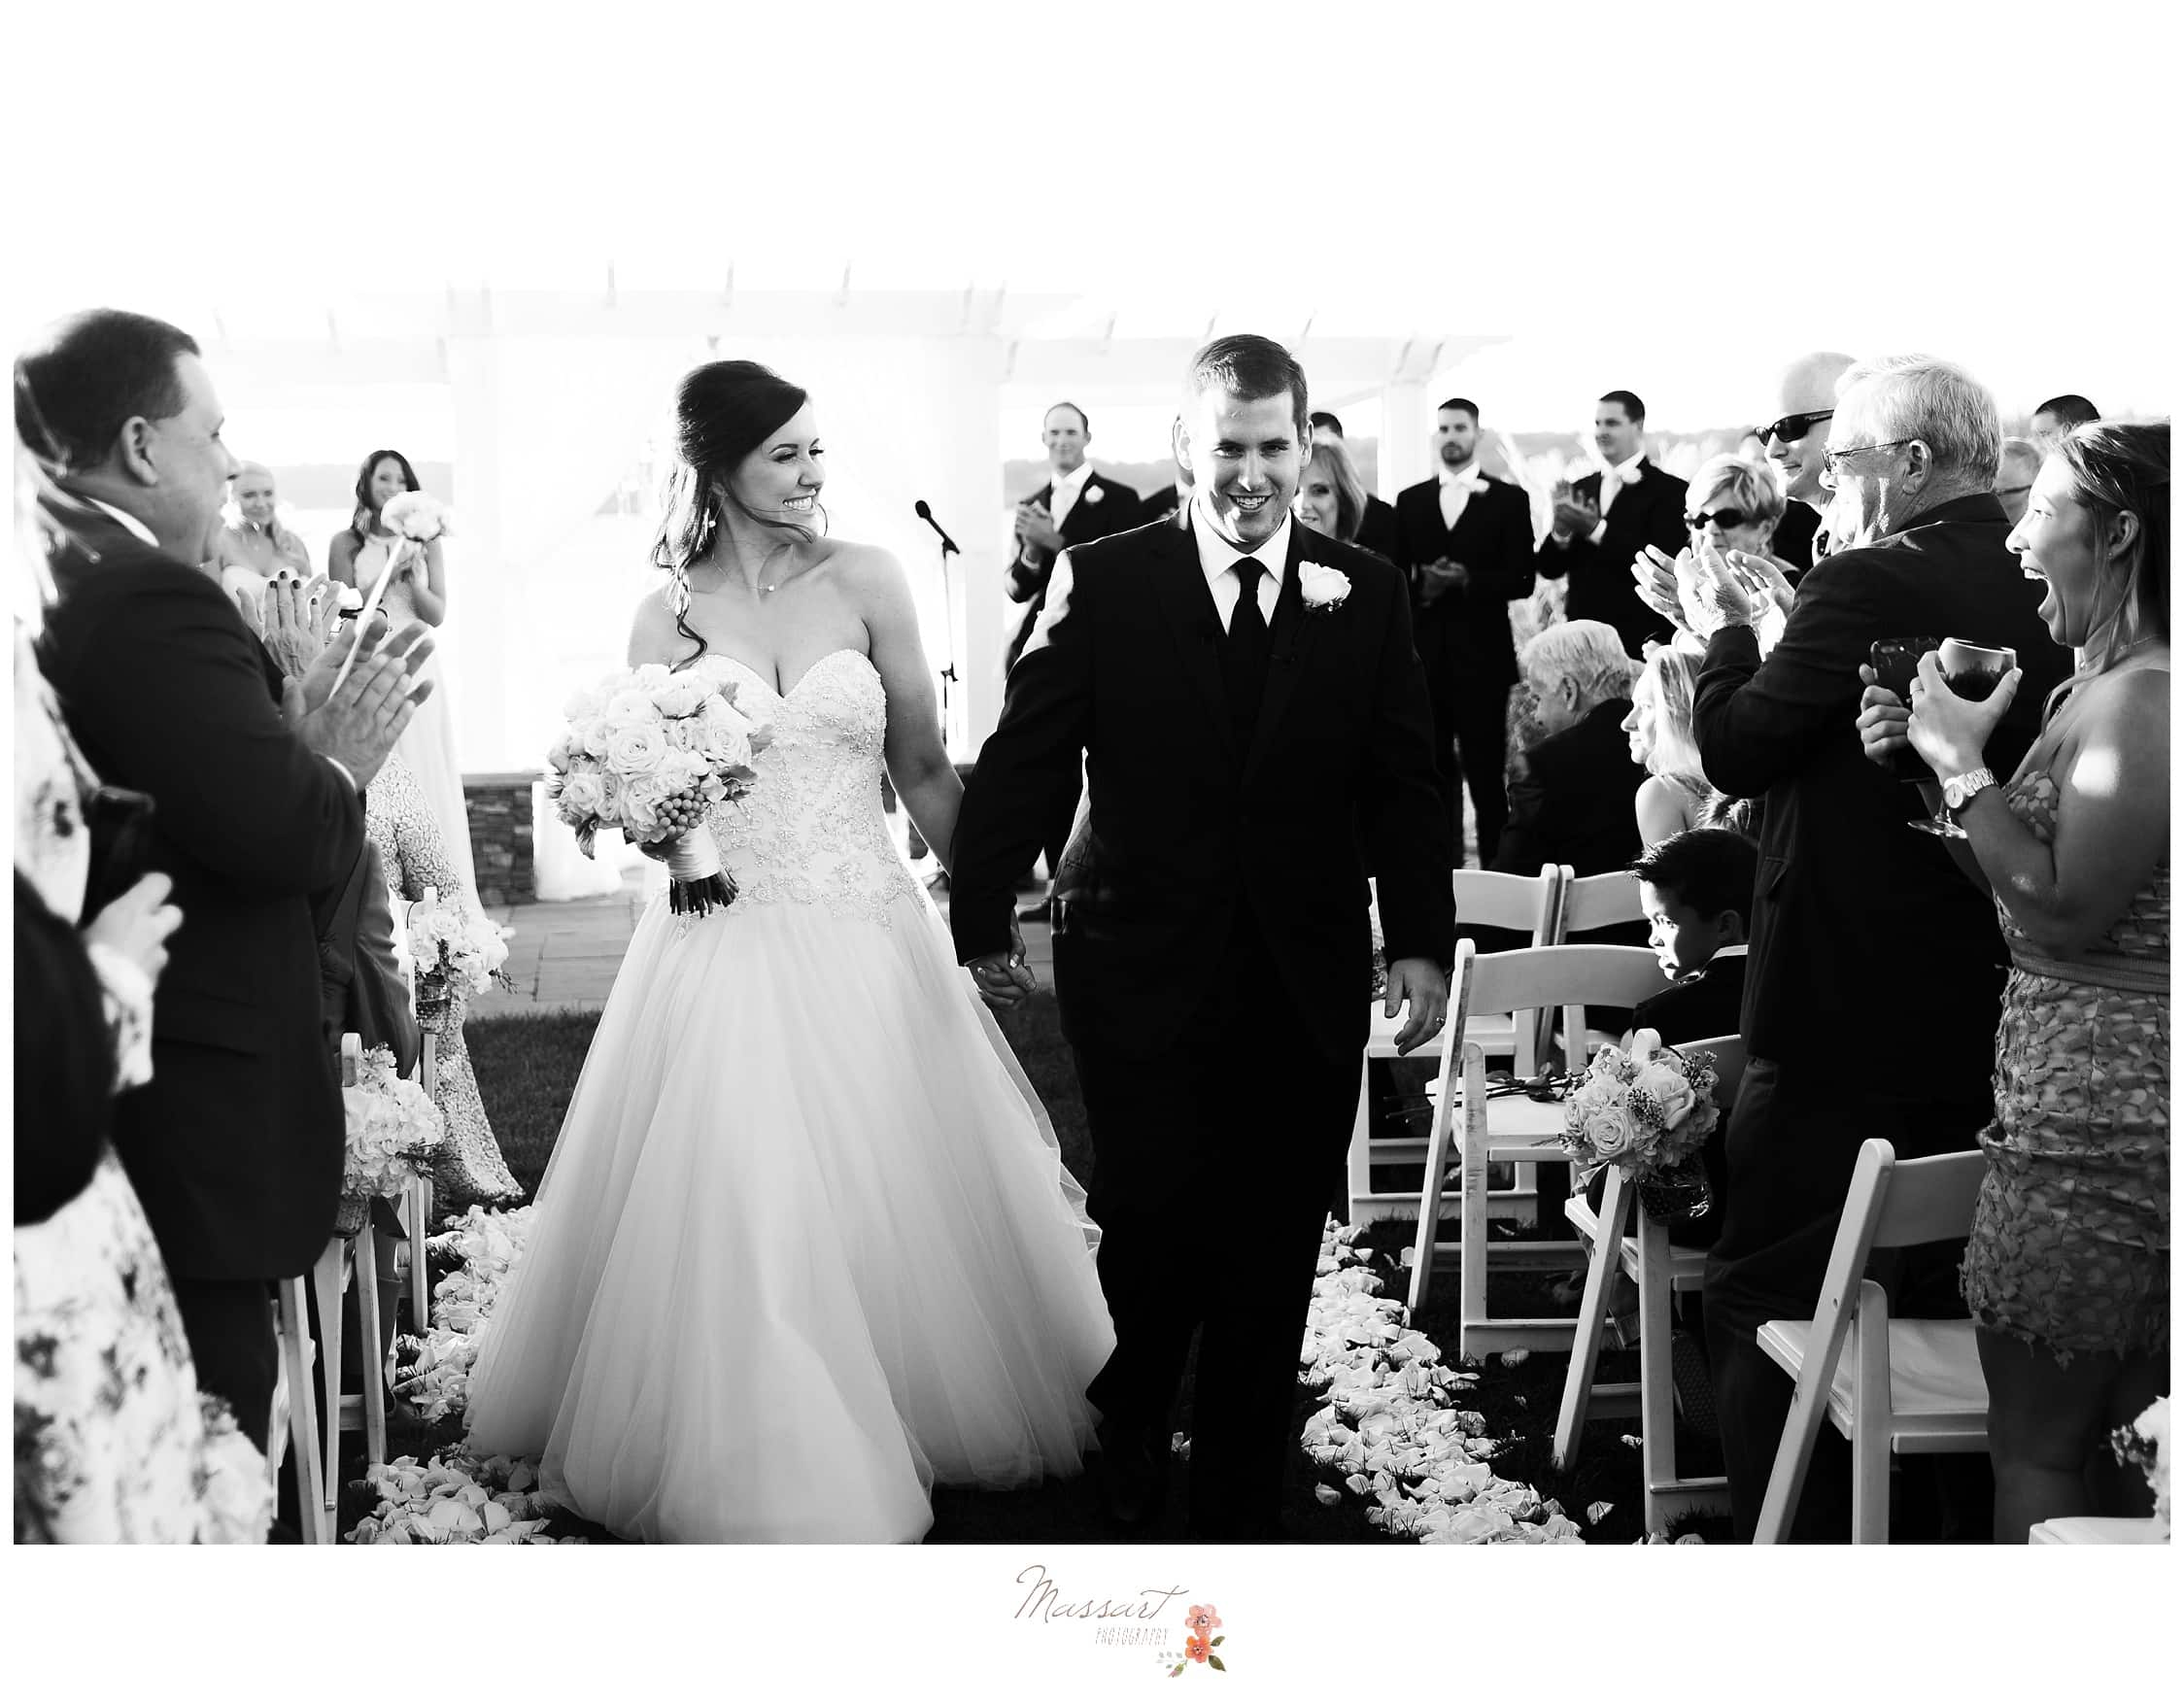 Black and white portrait of the bride and groom walking down the aisle photographed by Massart Photography RI